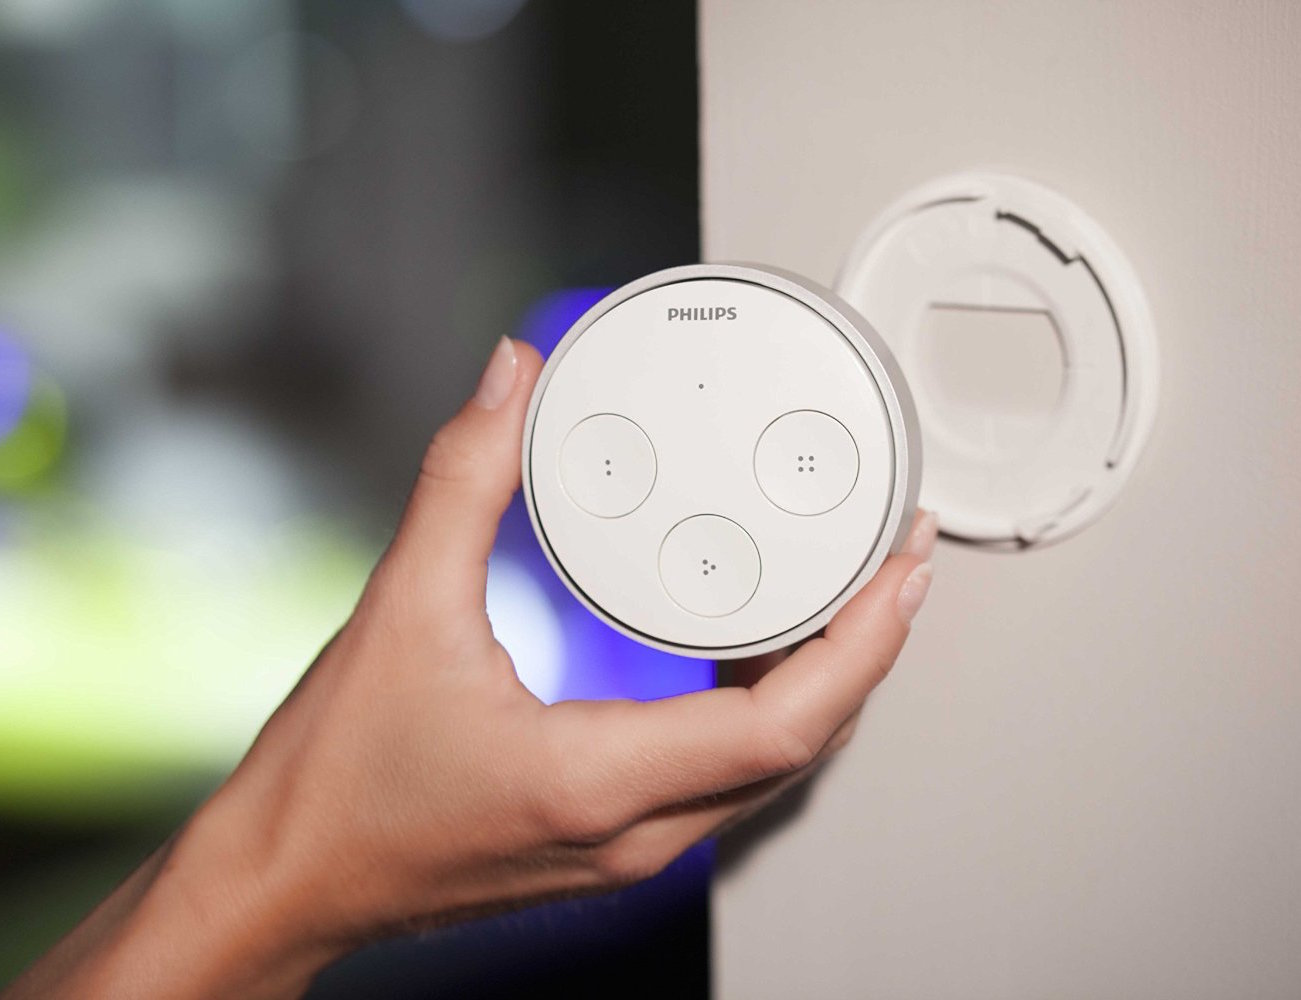 Philips+Hue+Tap+%26%238211%3B+Easier+Control+Of+Your+Wireless+Lighting